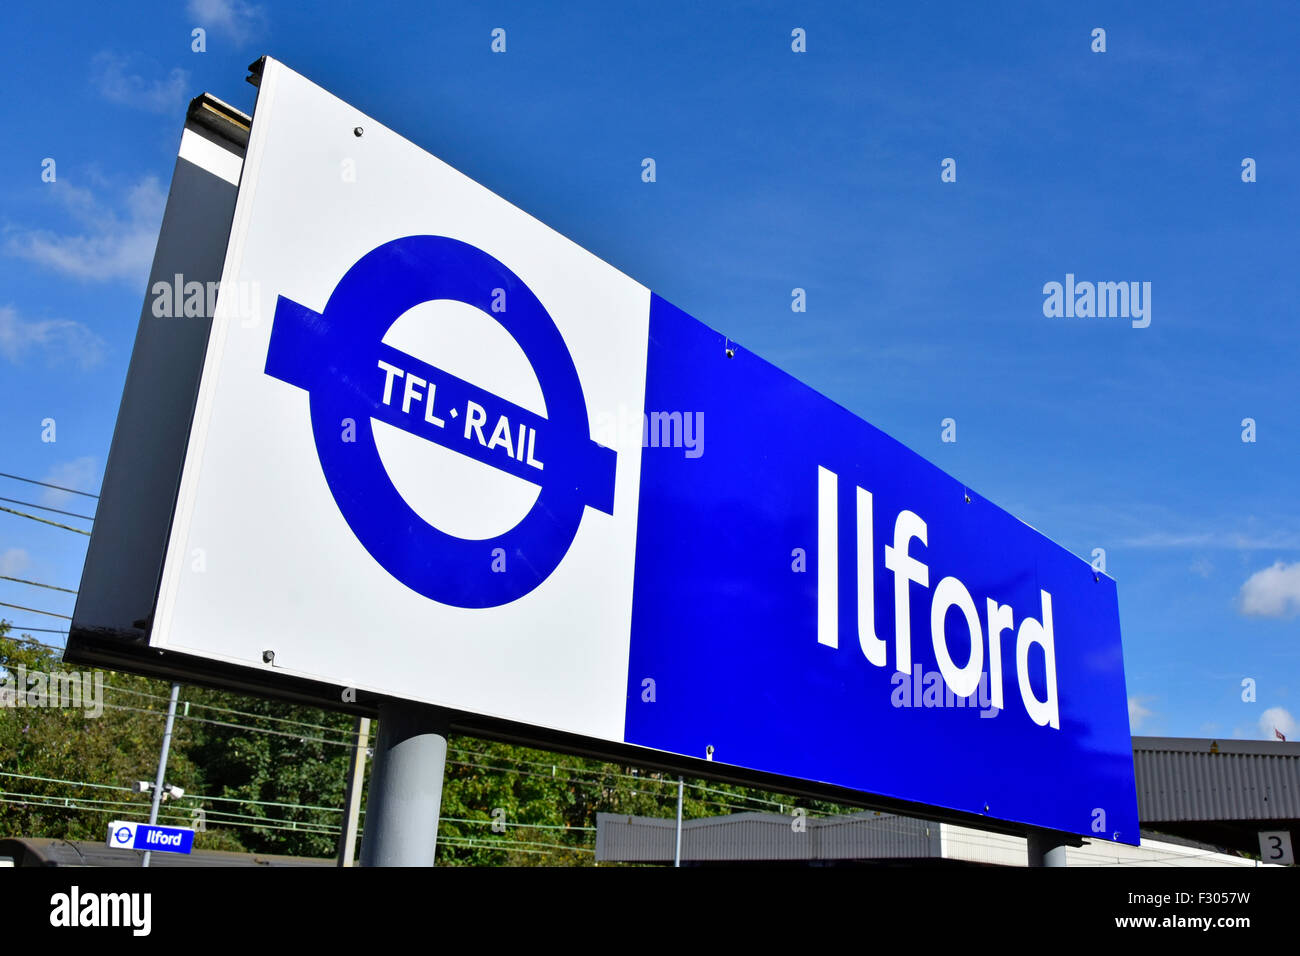 New 2015 London suburban station blue signage by TFL prior to changes to the Elizabeth Line when crossrail begins - Stock Image